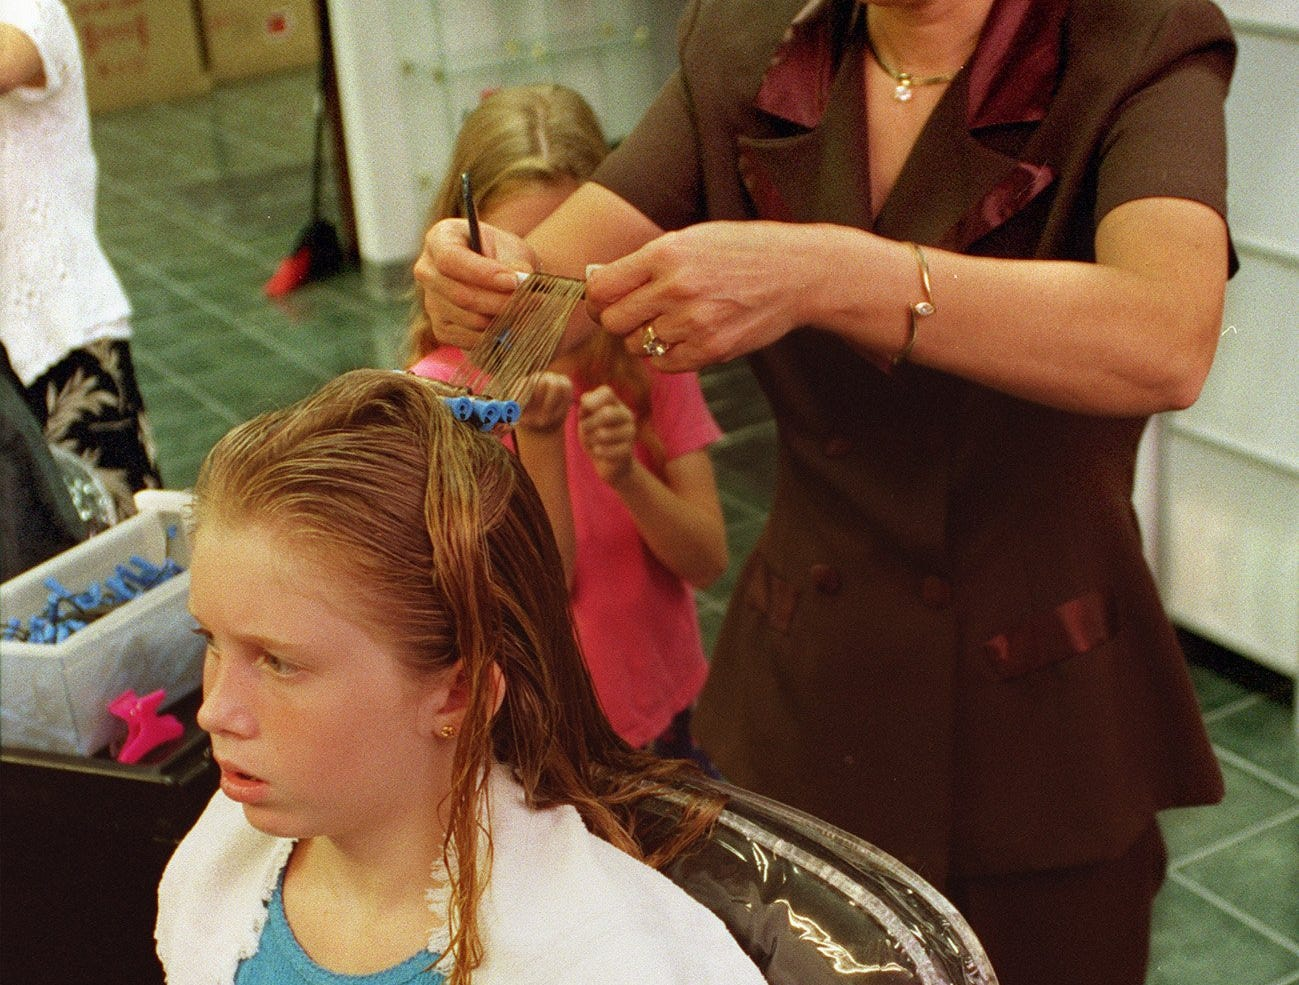 Sun Ok Kramer, owner of Sunny's Sons Salon at Valley West Mall, works on the hair style of Magen Carr, 9. Shot on August 19, 1999.